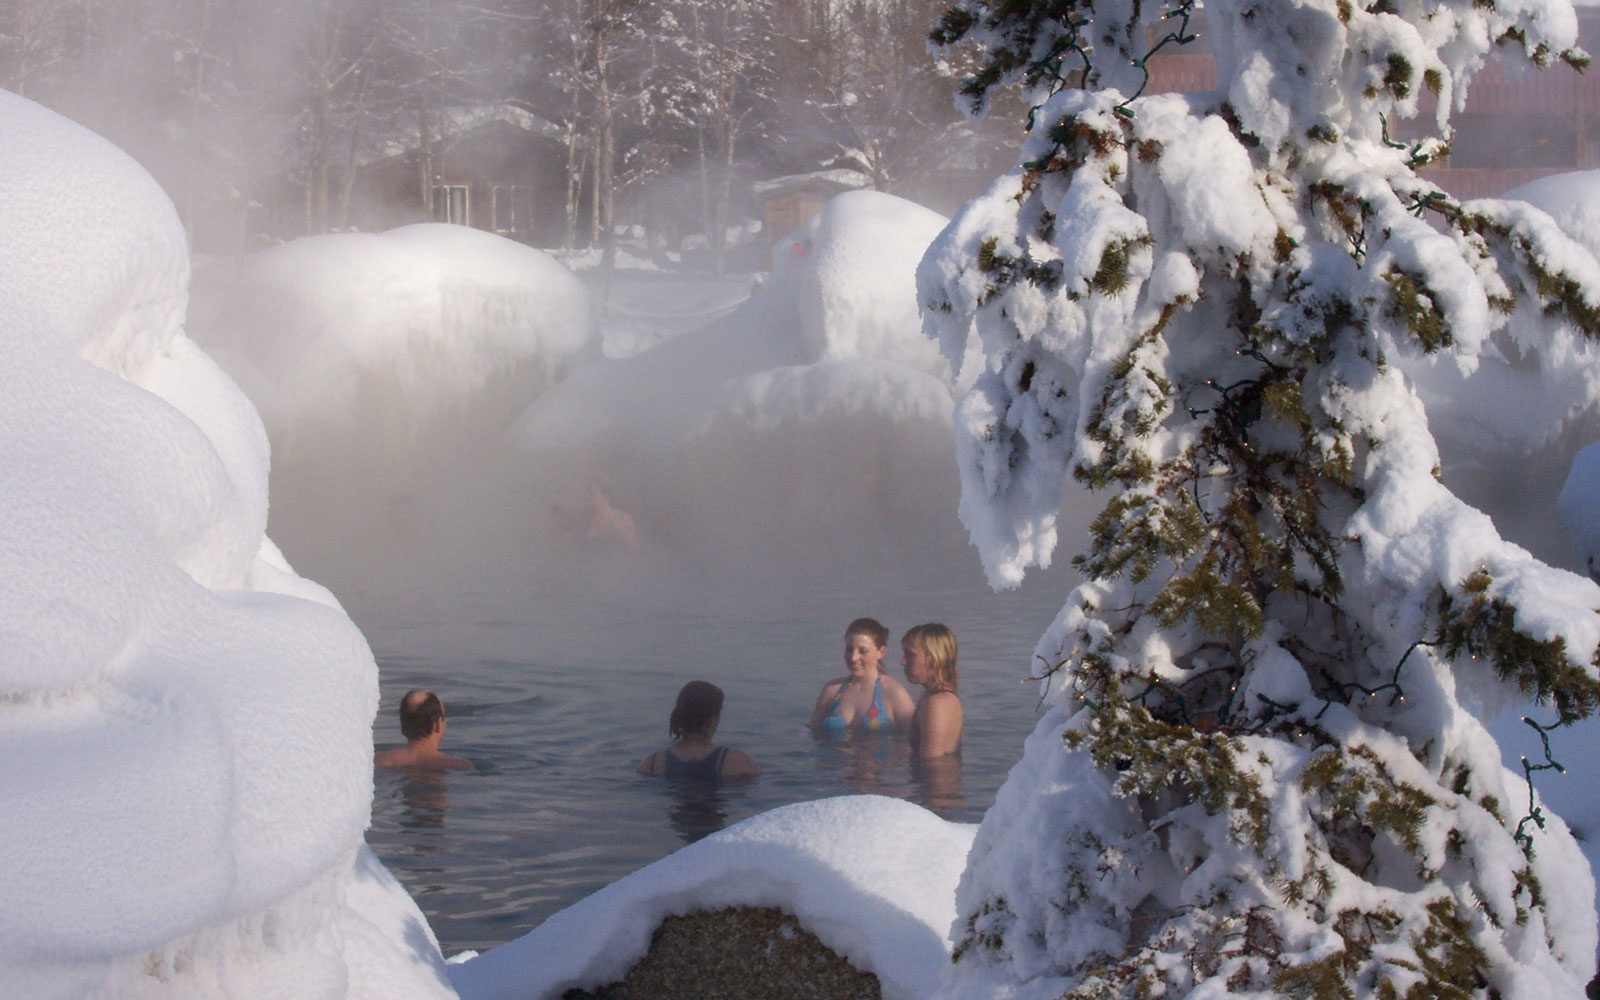 Chena Hot Springs, Fairbanks, AK